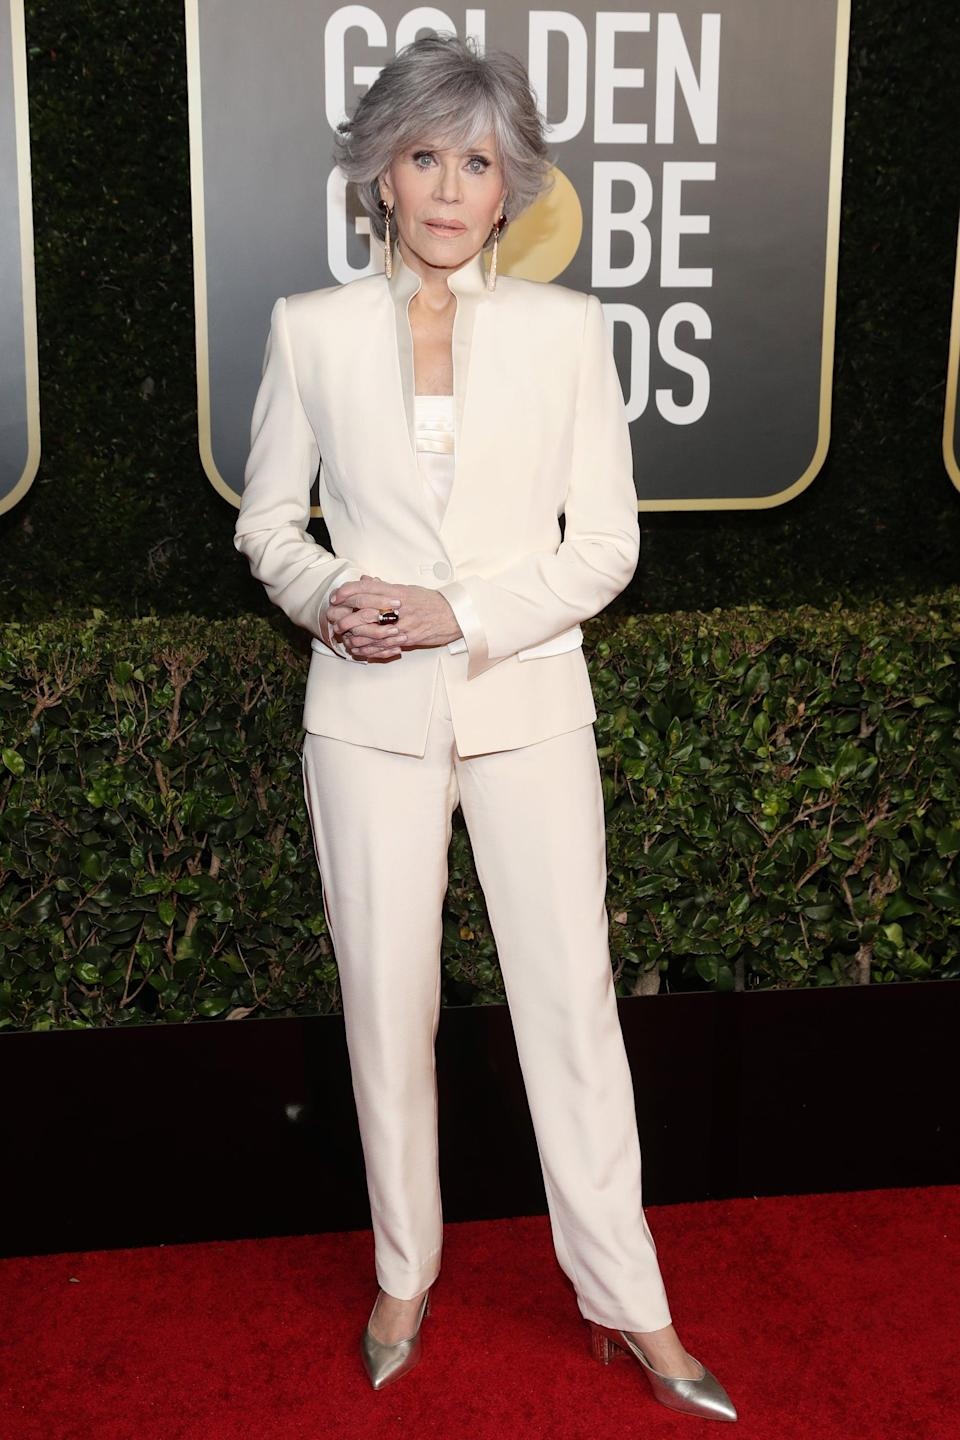 """<h2>Jane Fonda</h2><br>There to take home the Cecil B. DeMille Award, Jane Fonda kept true to her promise to never buy new clothes again by <a href=""""https://www.townandcountrymag.com/style/fashion-trends/a35632669/jane-fonda-rewear-pantsuit-golden-globe-2021-photos/"""" rel=""""nofollow noopener"""" target=""""_blank"""" data-ylk=""""slk:re-wearing a white suit to the Golden Globes"""" class=""""link rapid-noclick-resp"""">re-wearing a white suit to the Golden Globes</a>.<span class=""""copyright"""">Photo: Todd Williamson/NBC/NBCU Photo Bank/Getty Images.</span>"""